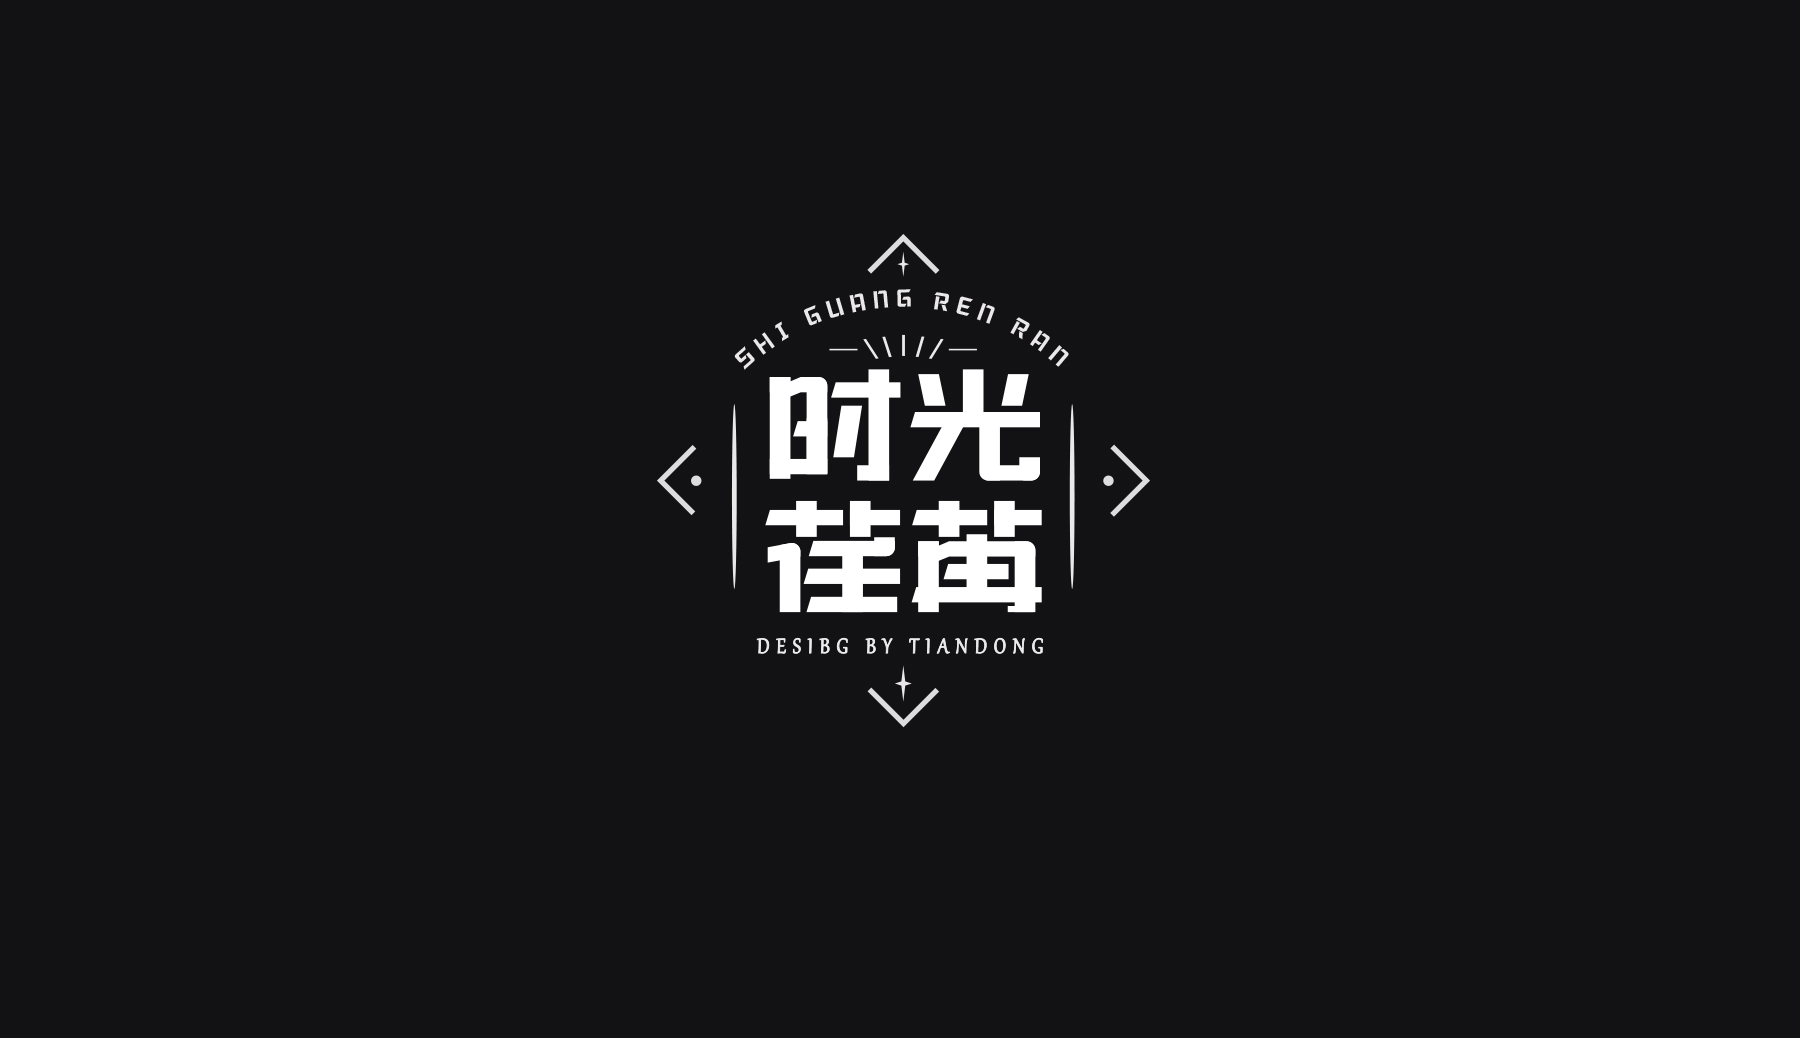 chinesefontdesign.com 2017 07 26 13 03 53 576177 18P Chinese font design   font in life